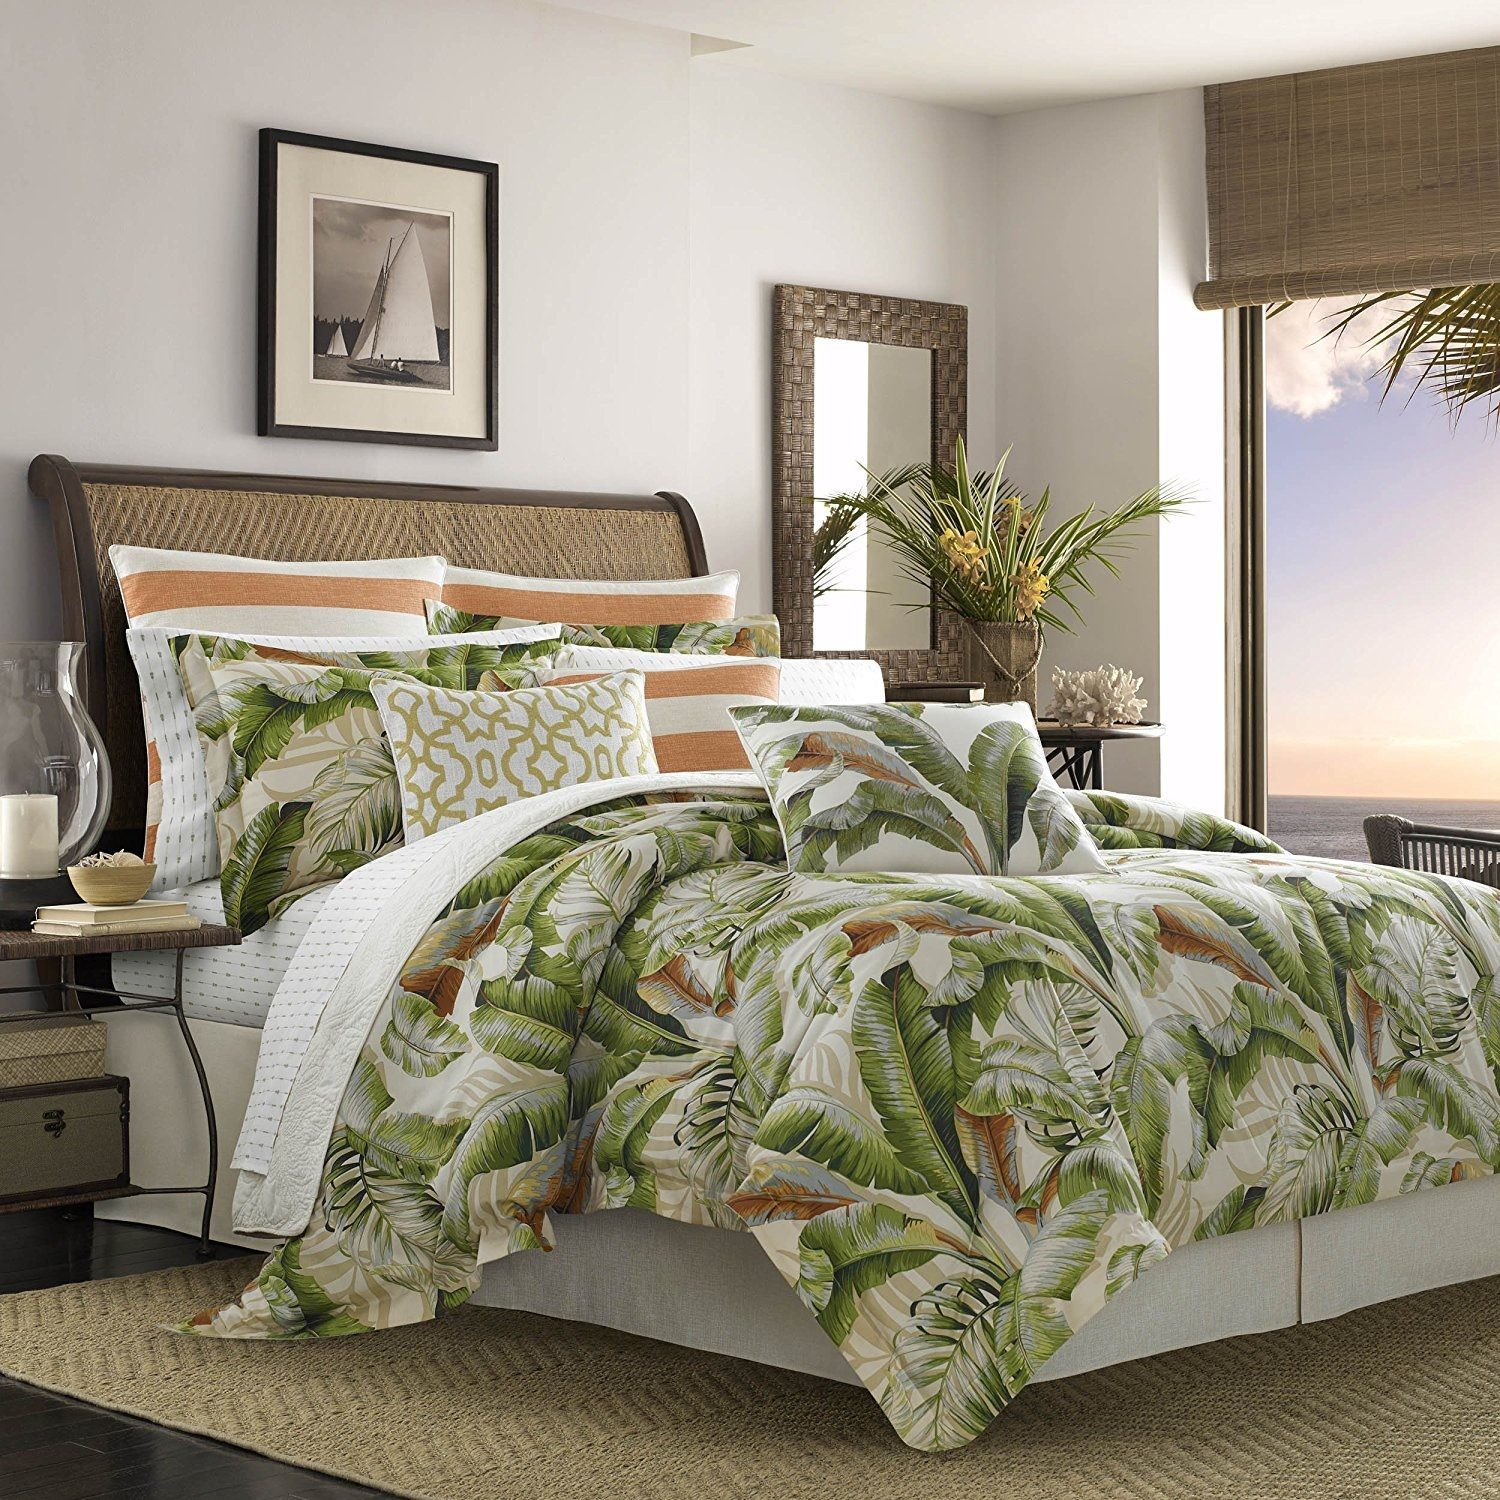 100 Tropical Bedding Sets And Tropical Comforters For 2020